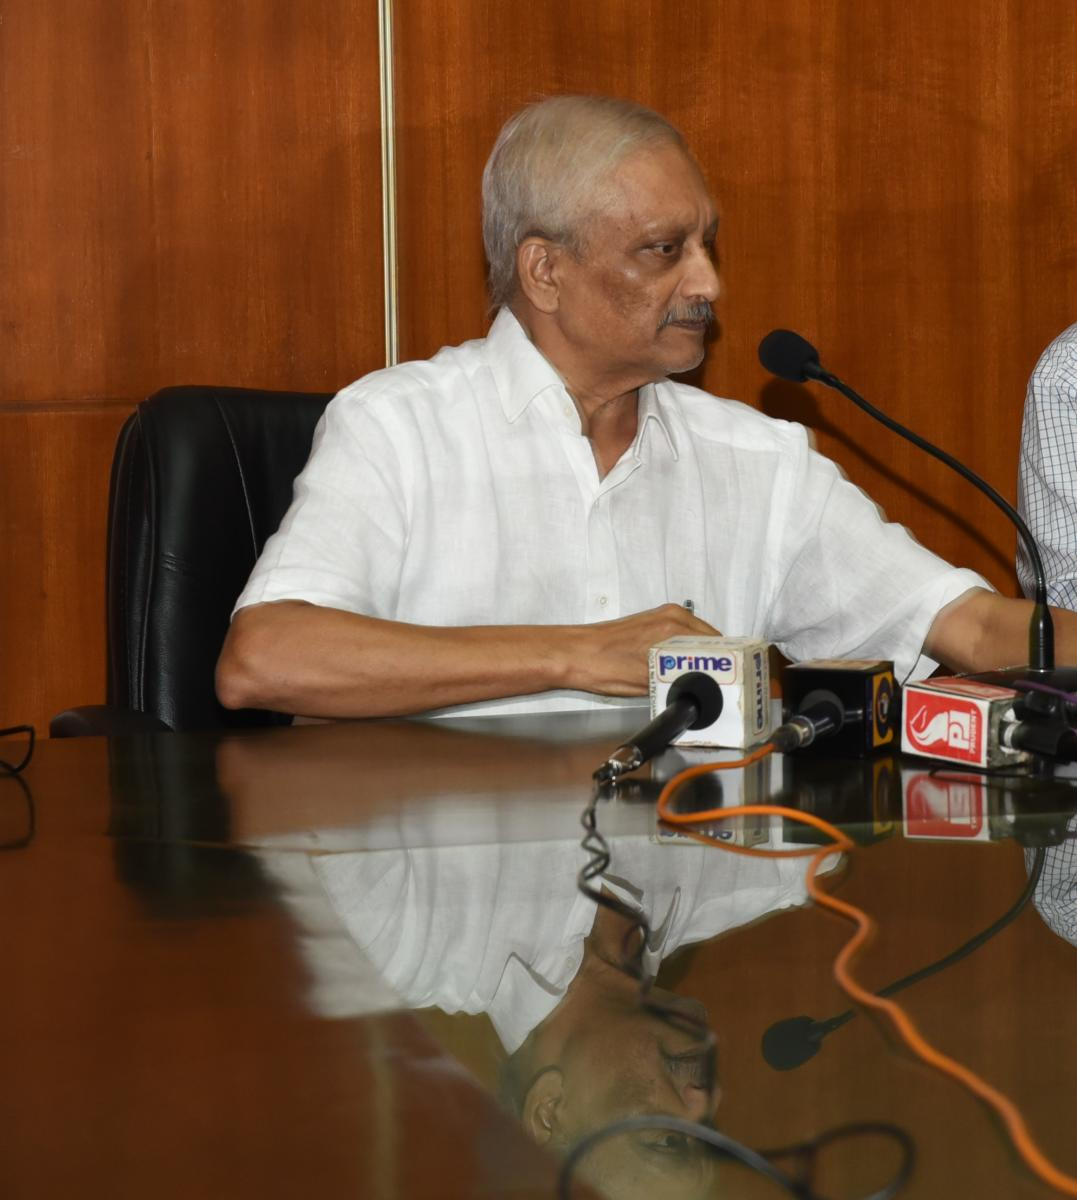 The news put out in Goa was that the workaholic chief minister would put in less than his punishing earlier ultra-long hours.